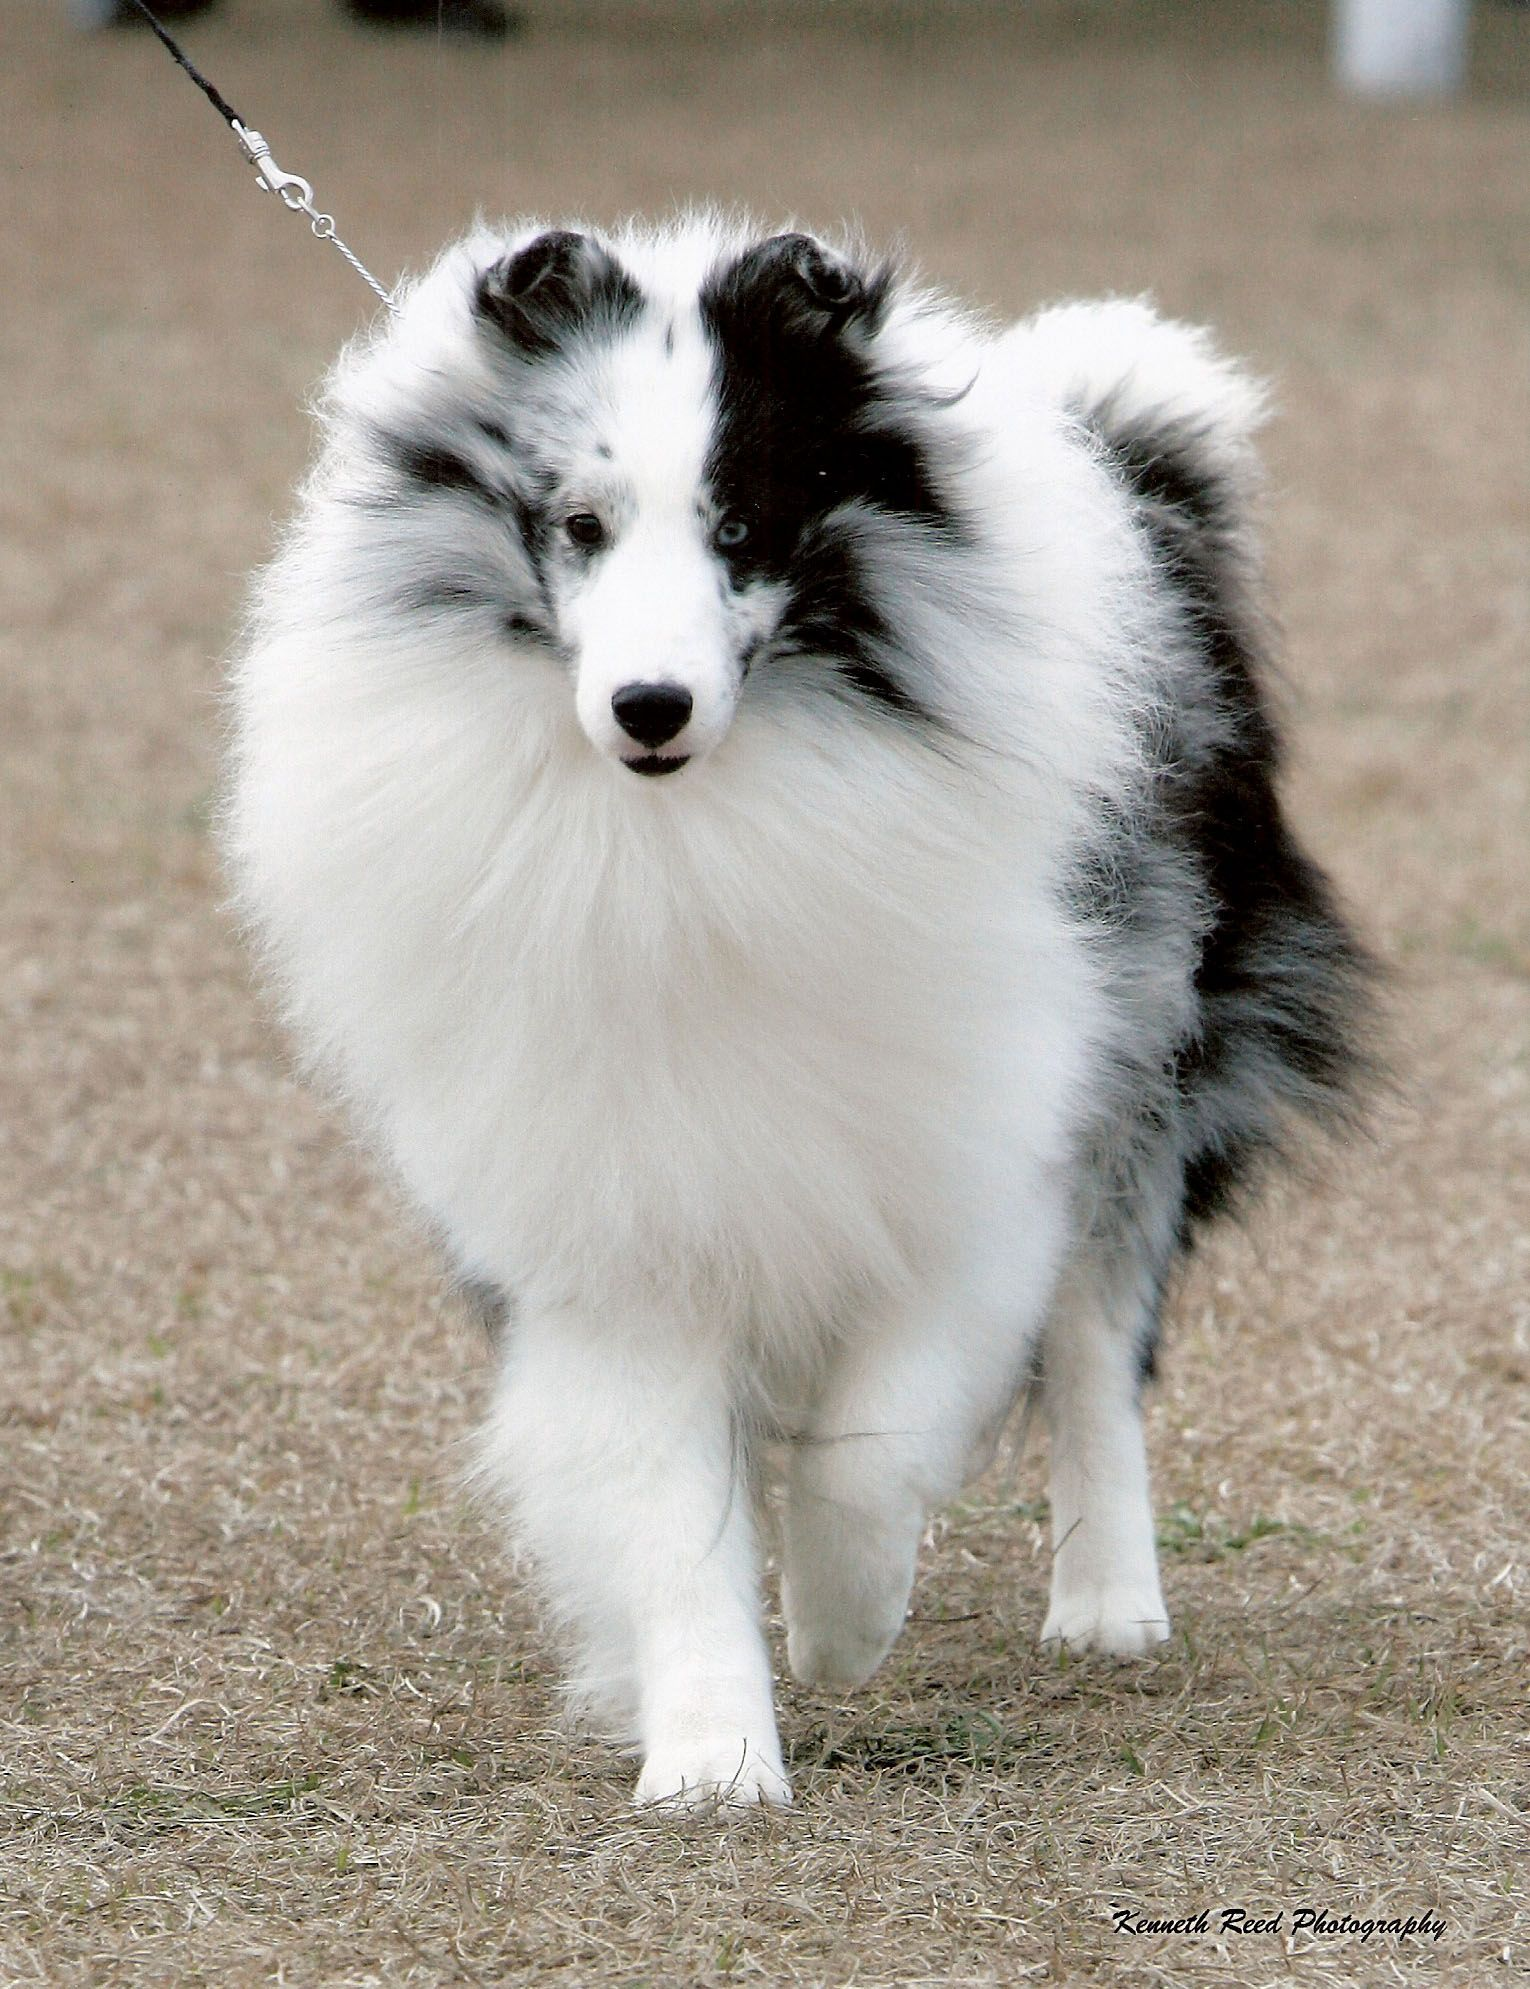 Can you guys tell me all you know about Shetland Sheepdog